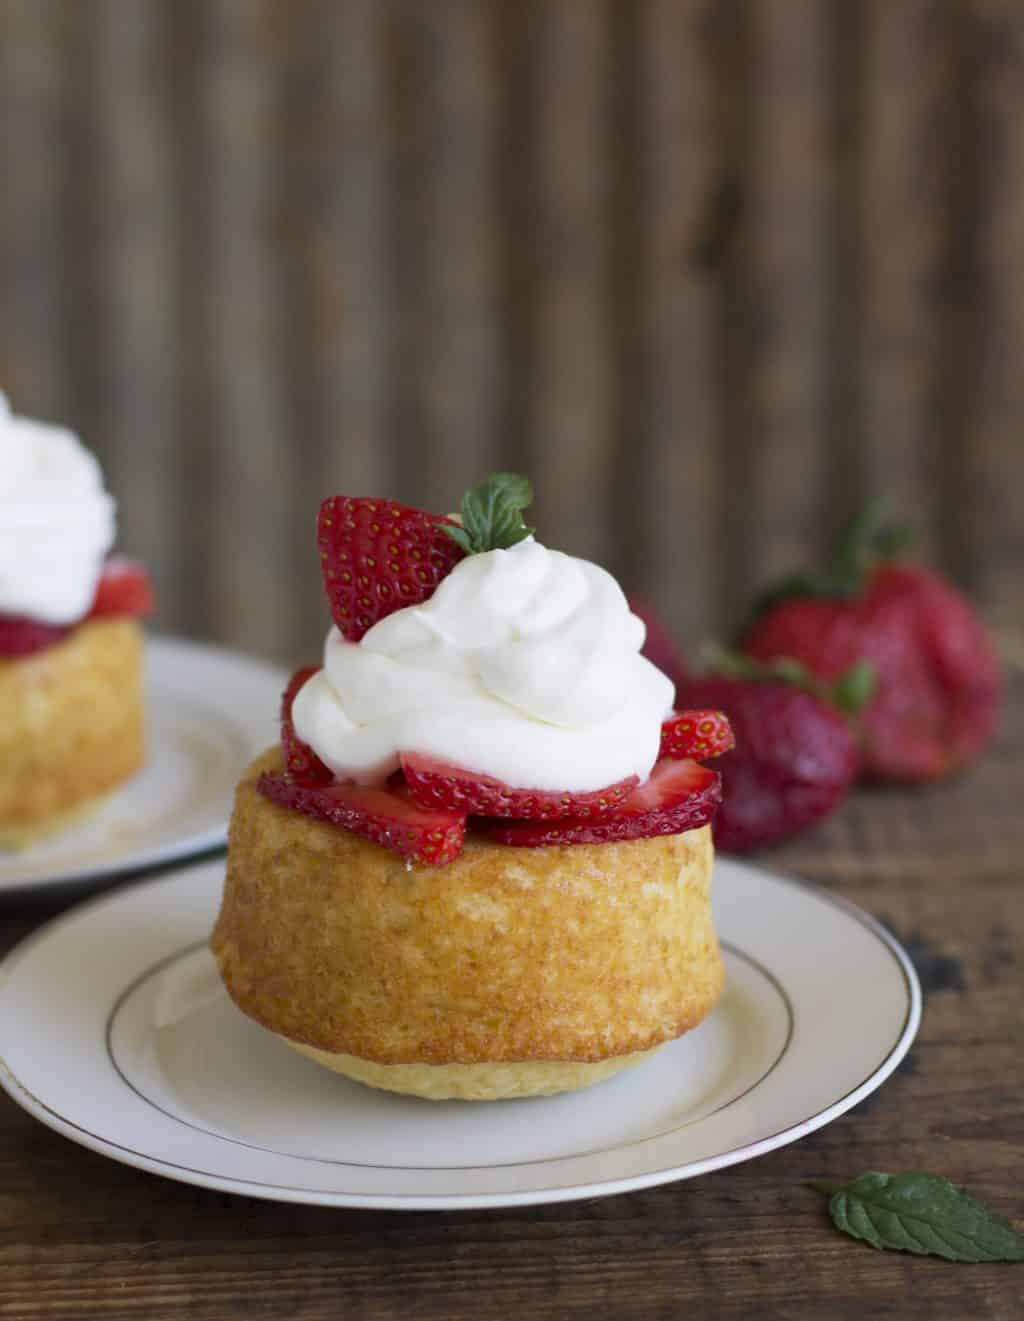 Strawberry Shortcake Biscuits Recipes  Homemade Strawberry Shortcake